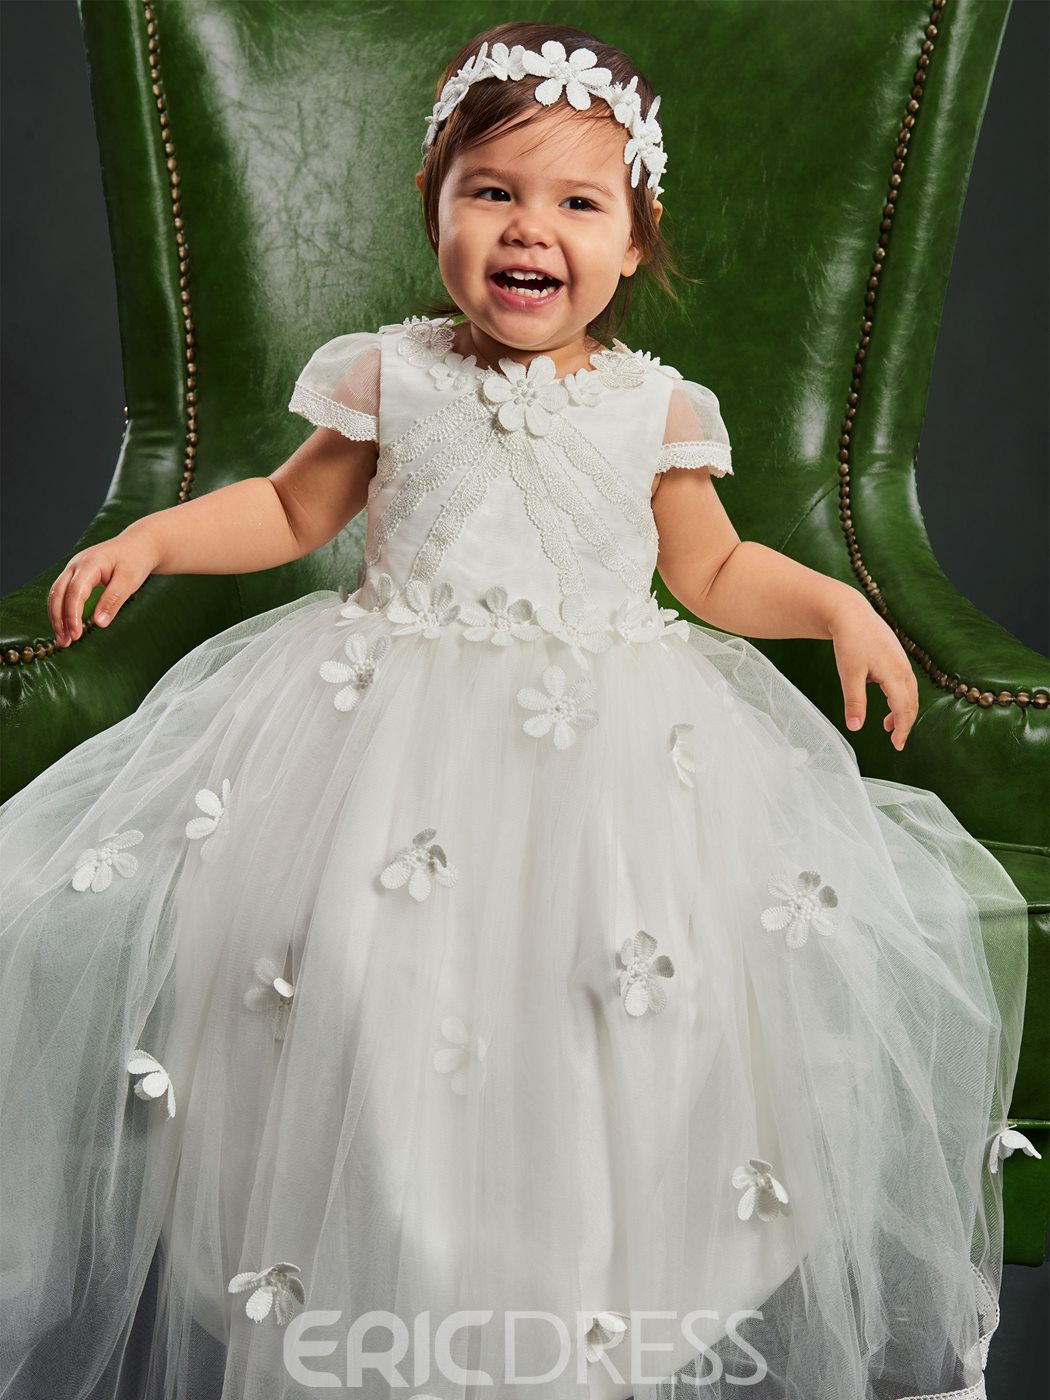 Ericdress Tulle Flowers Infant Baby Girl Christening Gown